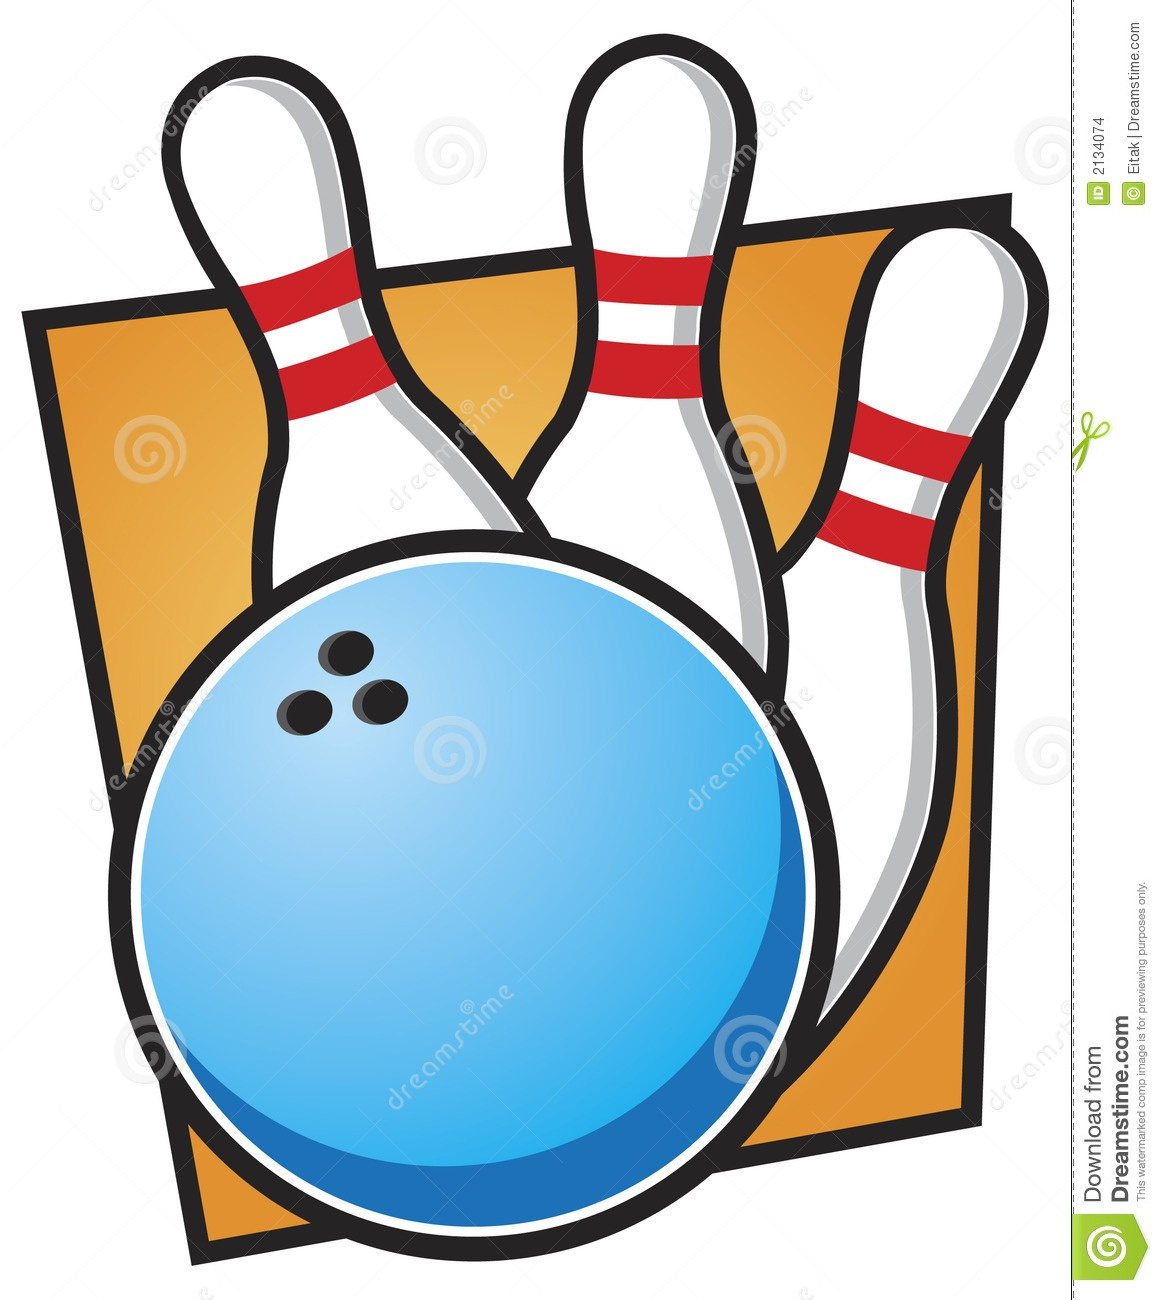 Bowling Pictures Free | Free Download Best Bowling Pictures Free On - Free Printable Bowling Clipart